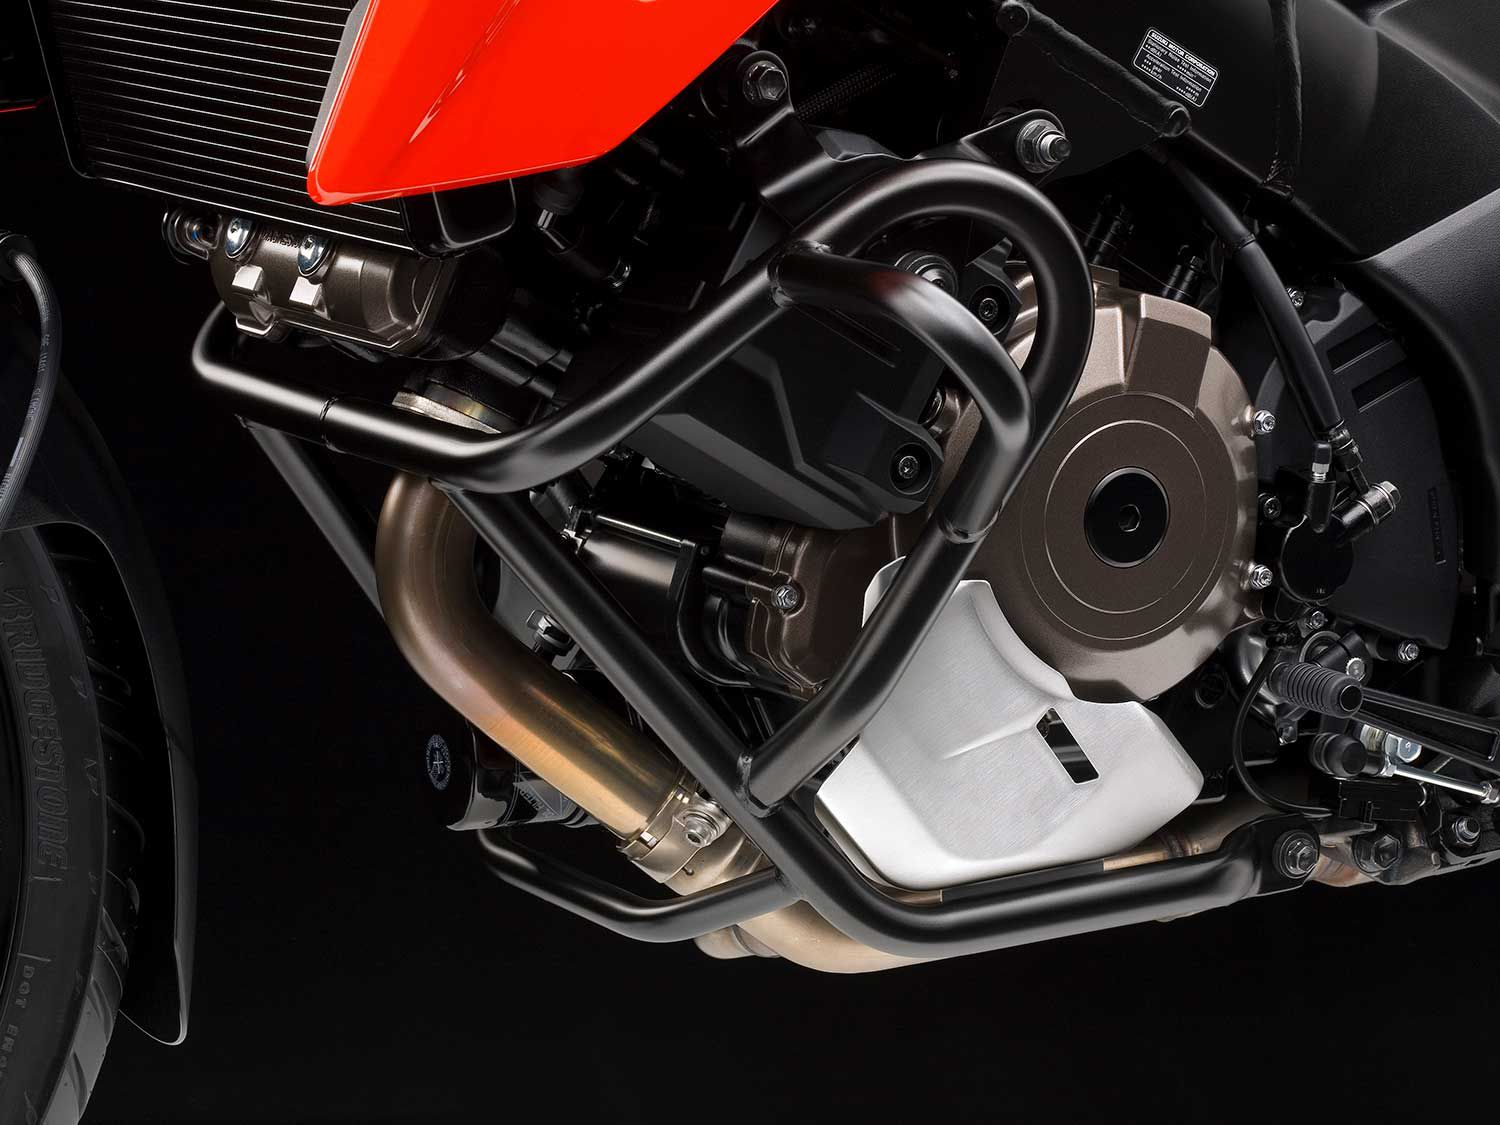 The 1050XT's crashbar and engine cowl. The oil filler is very exposed so riders considering regular off-pavement fun will want to grab a sump guard from the Suzuki accessory catalog or aftermarket.